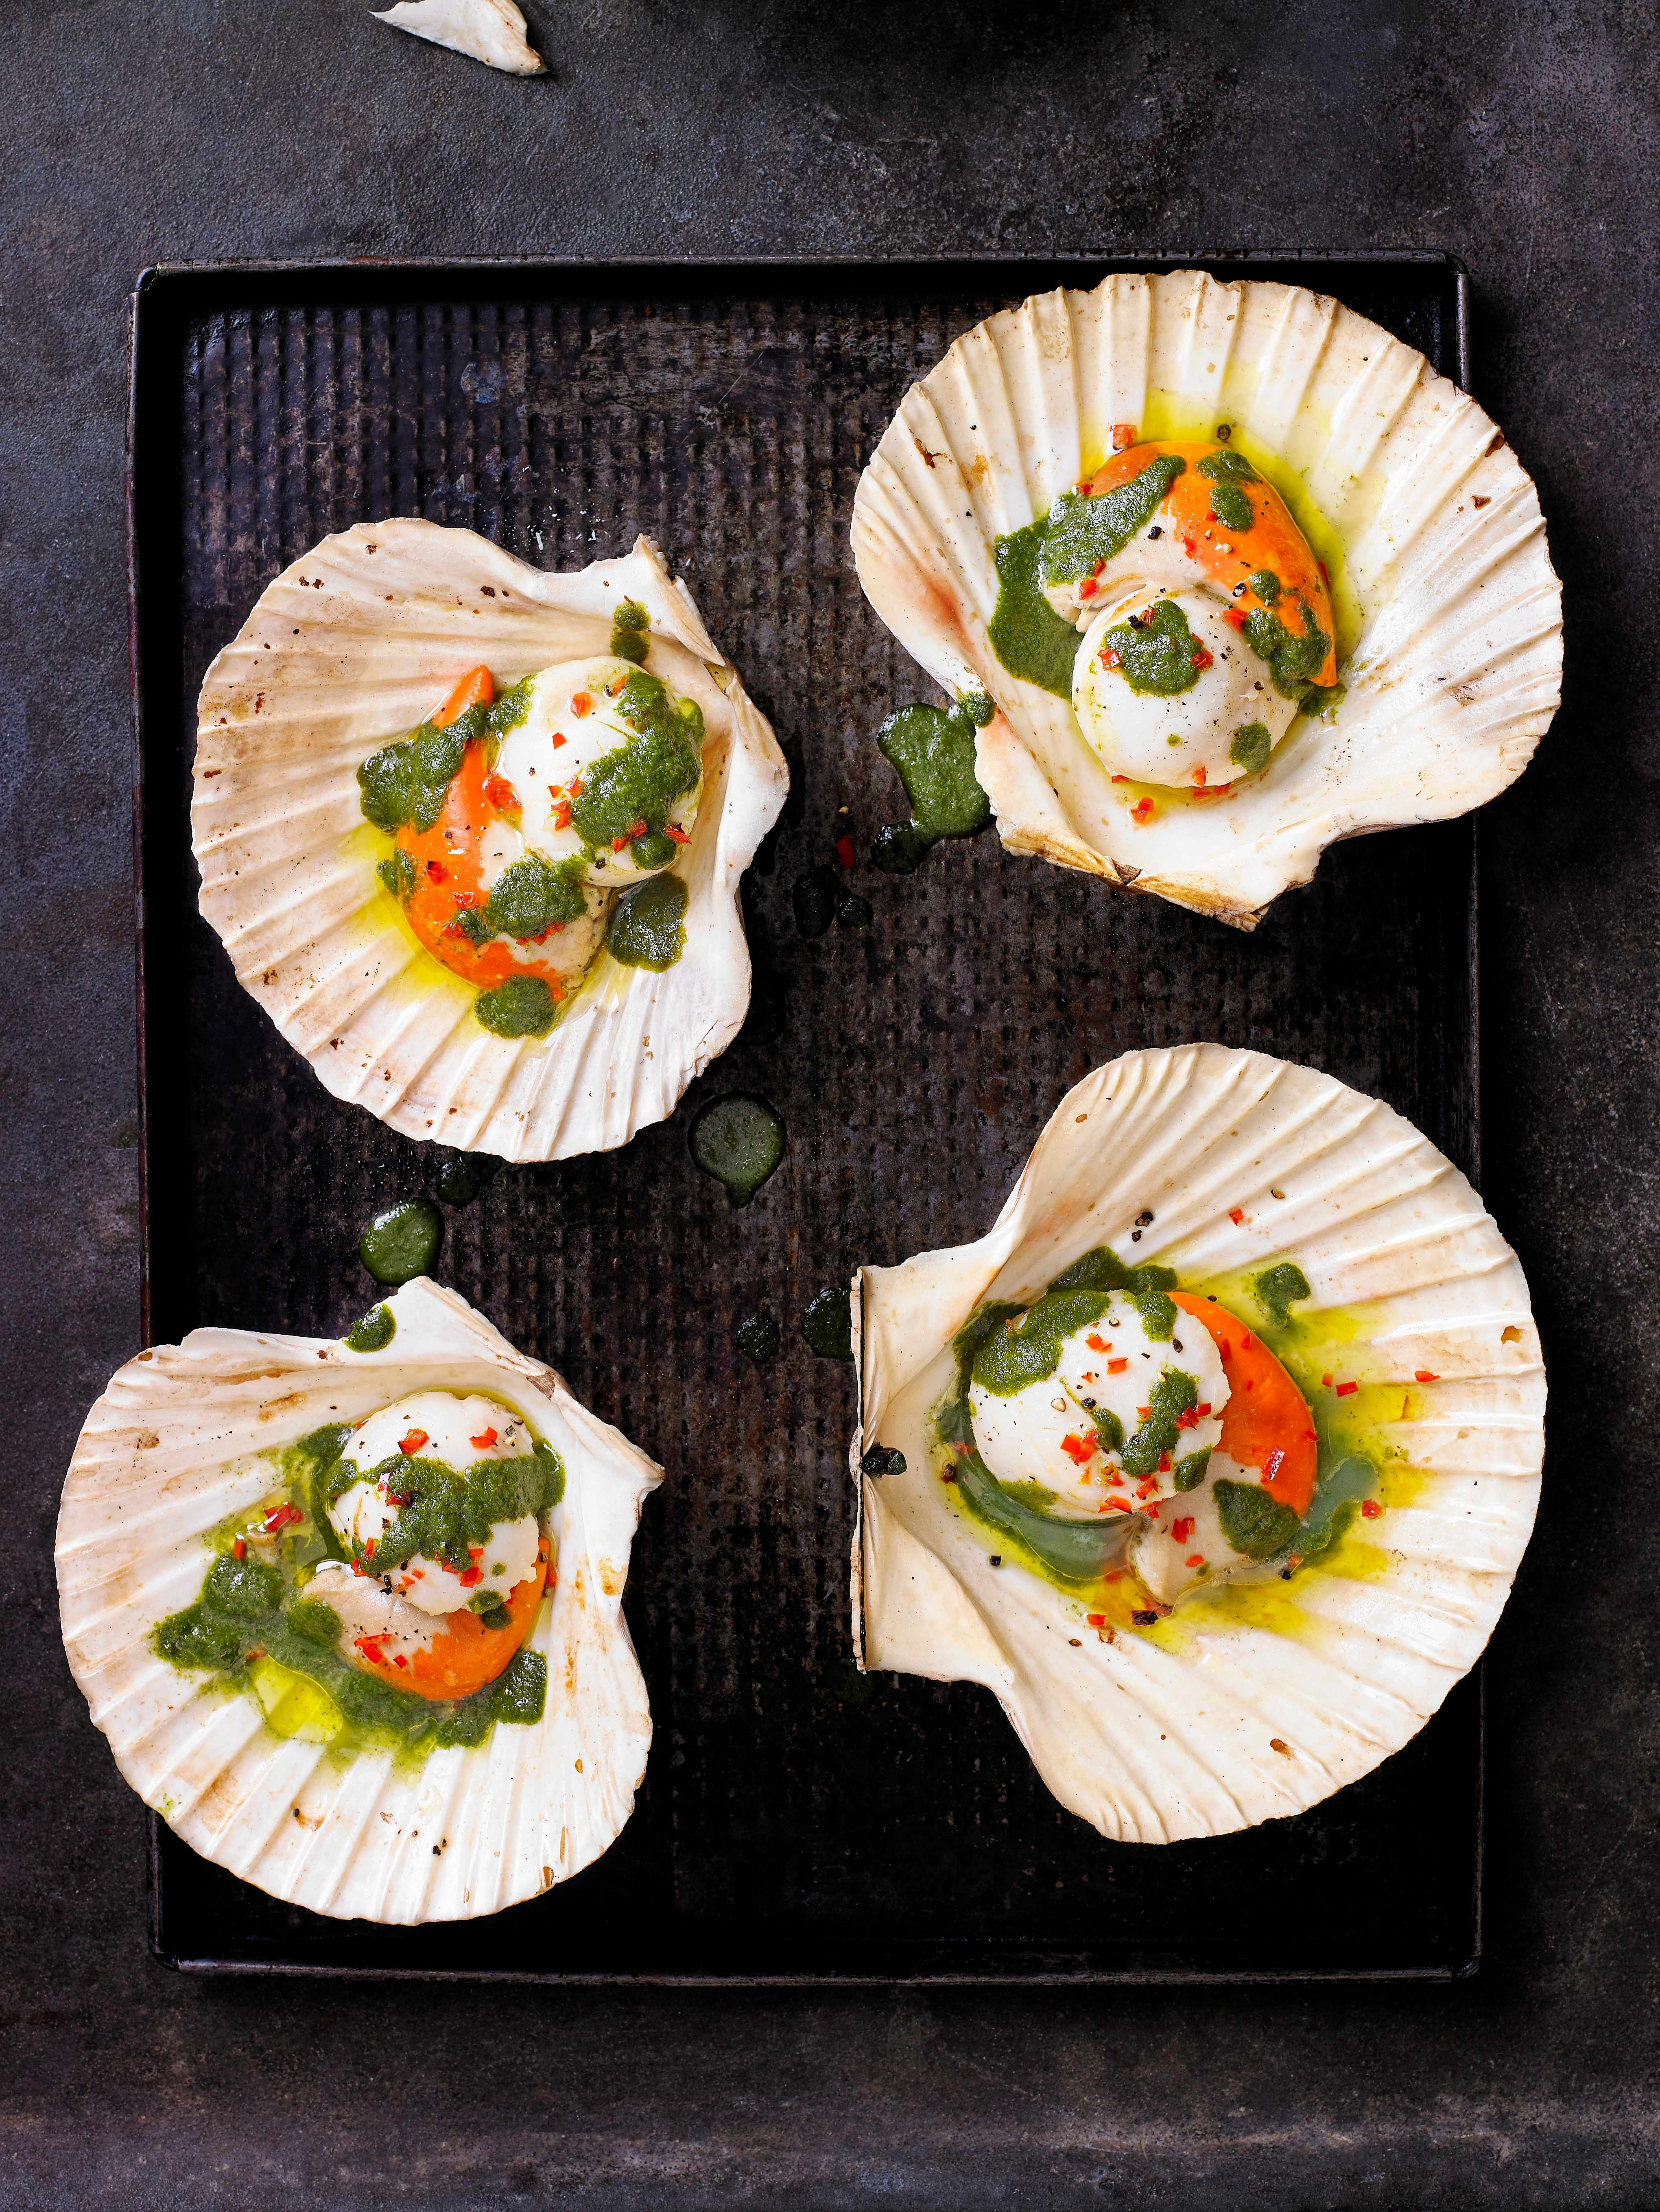 Scallops Recipe with Vietnamese Sauce